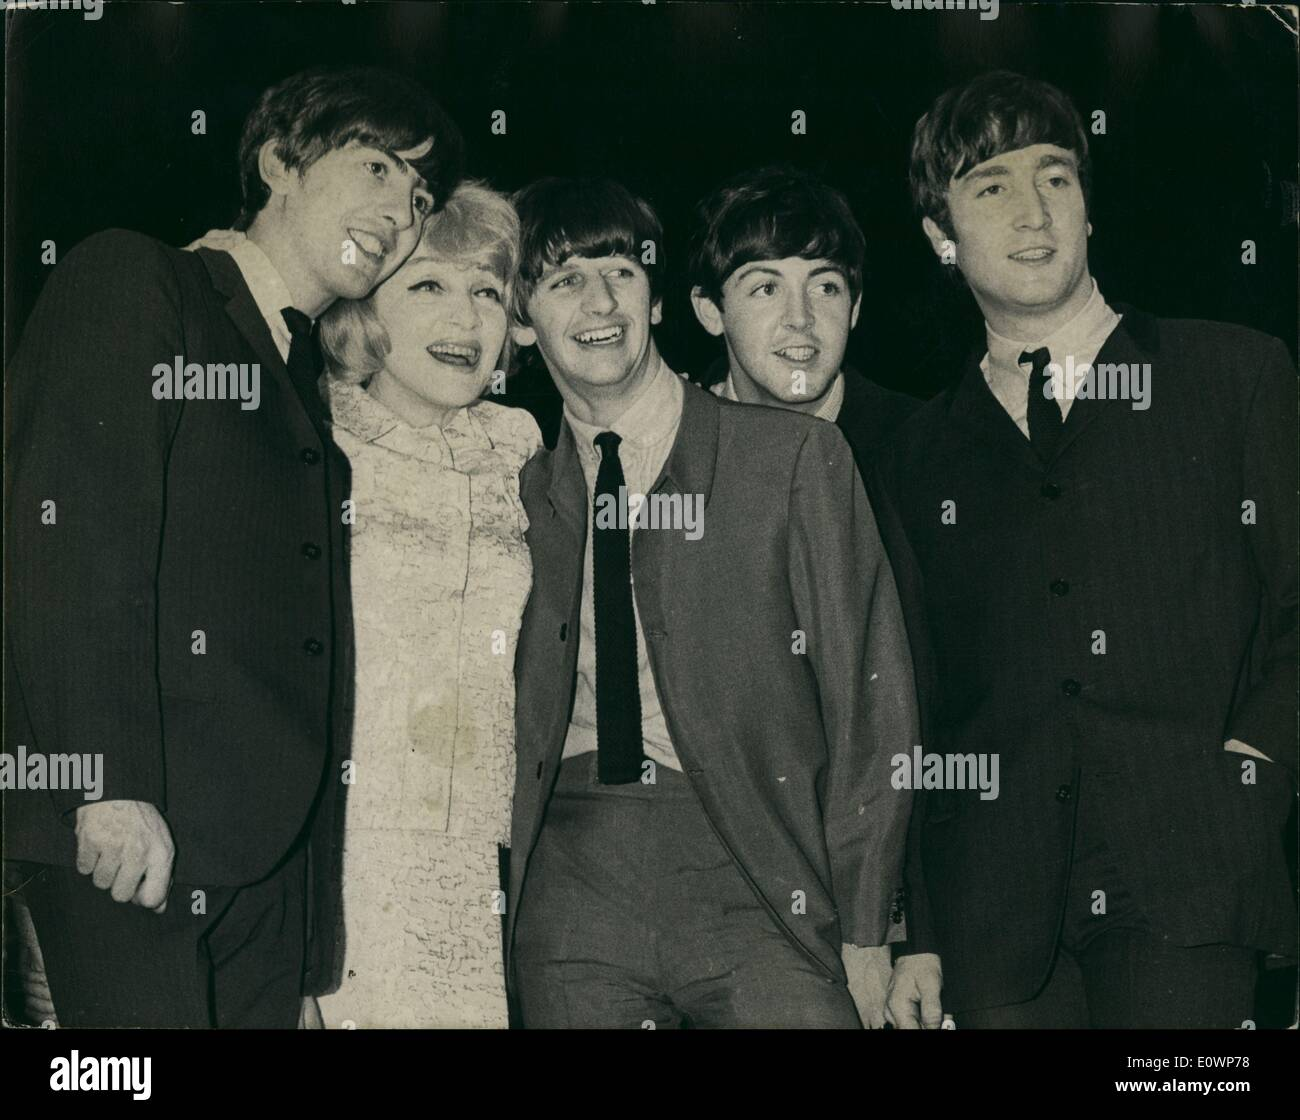 Nov. 11, 1963 - Marlene Dietrich Meet the Beatles.'' Famous German cabaret artist and film star Marlene Dietrich is seen with the popular singing group the Beatles when they were rehearsing for tonight's Royal Command Variety Performance which is to be held at the Prince of Wales Theatre in the presence of the Queen Mother tonight. - Stock Image